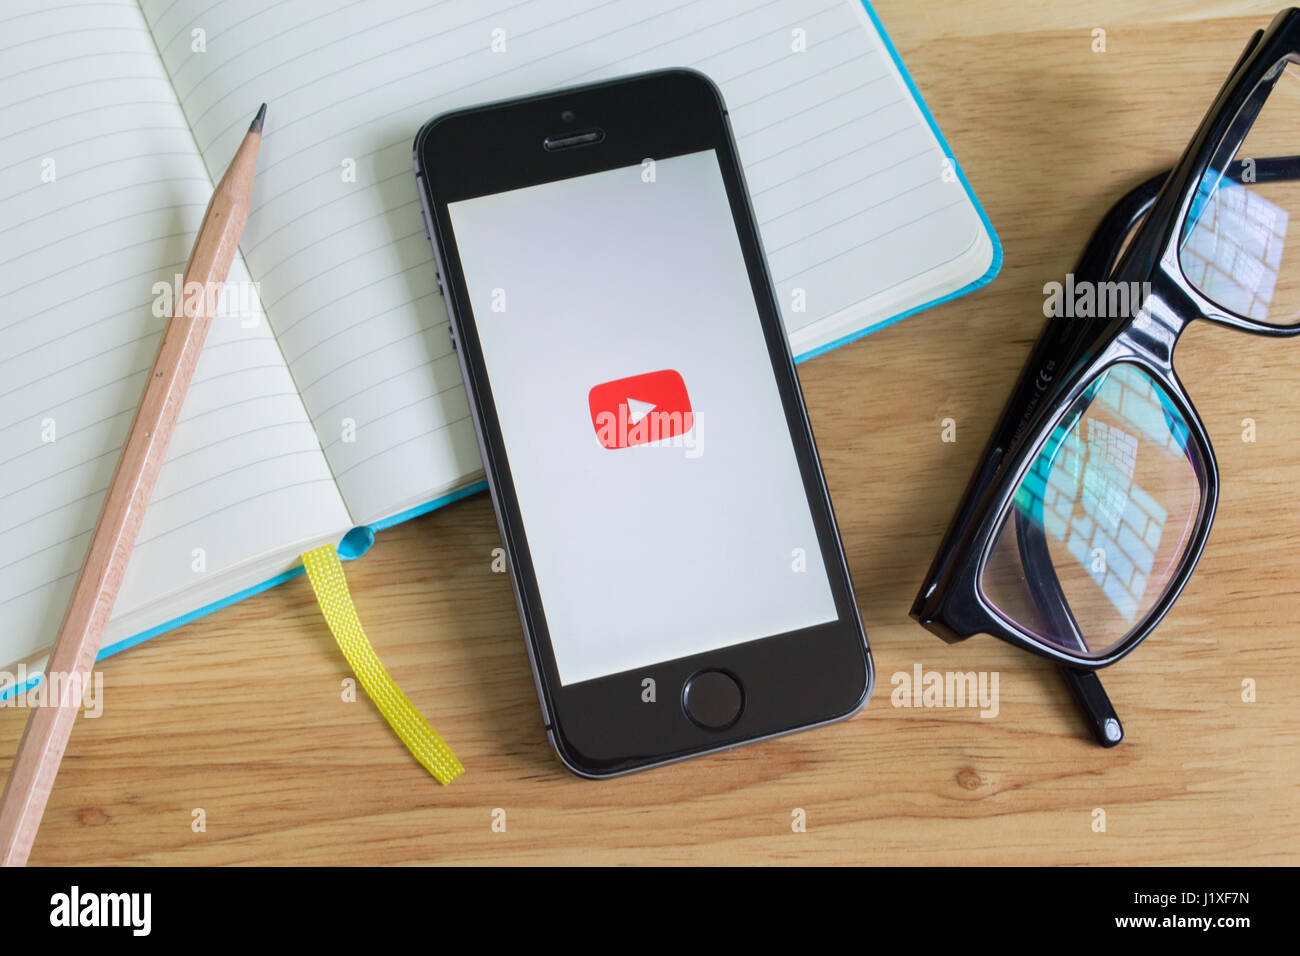 Bangkok, Thailand - April 22, 2017 : Apple iPhone5s showing its screen with YouTube application. Stock Photo